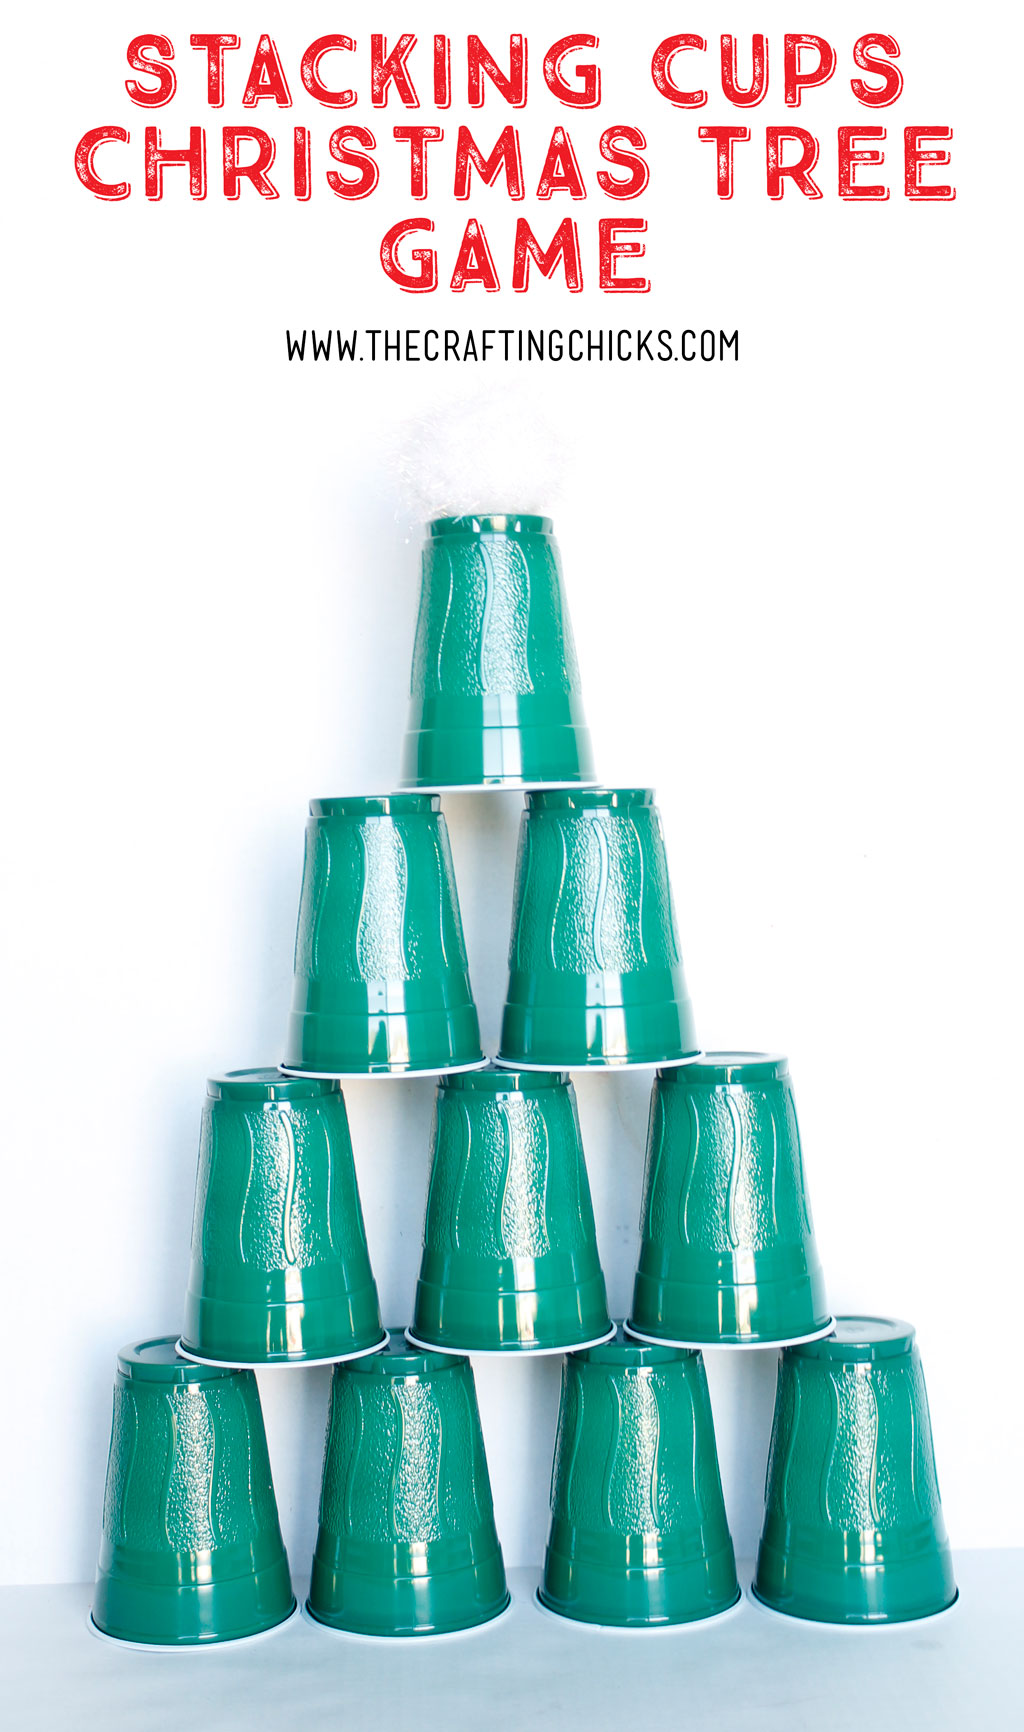 Stacking Cups Christmas Tree Game